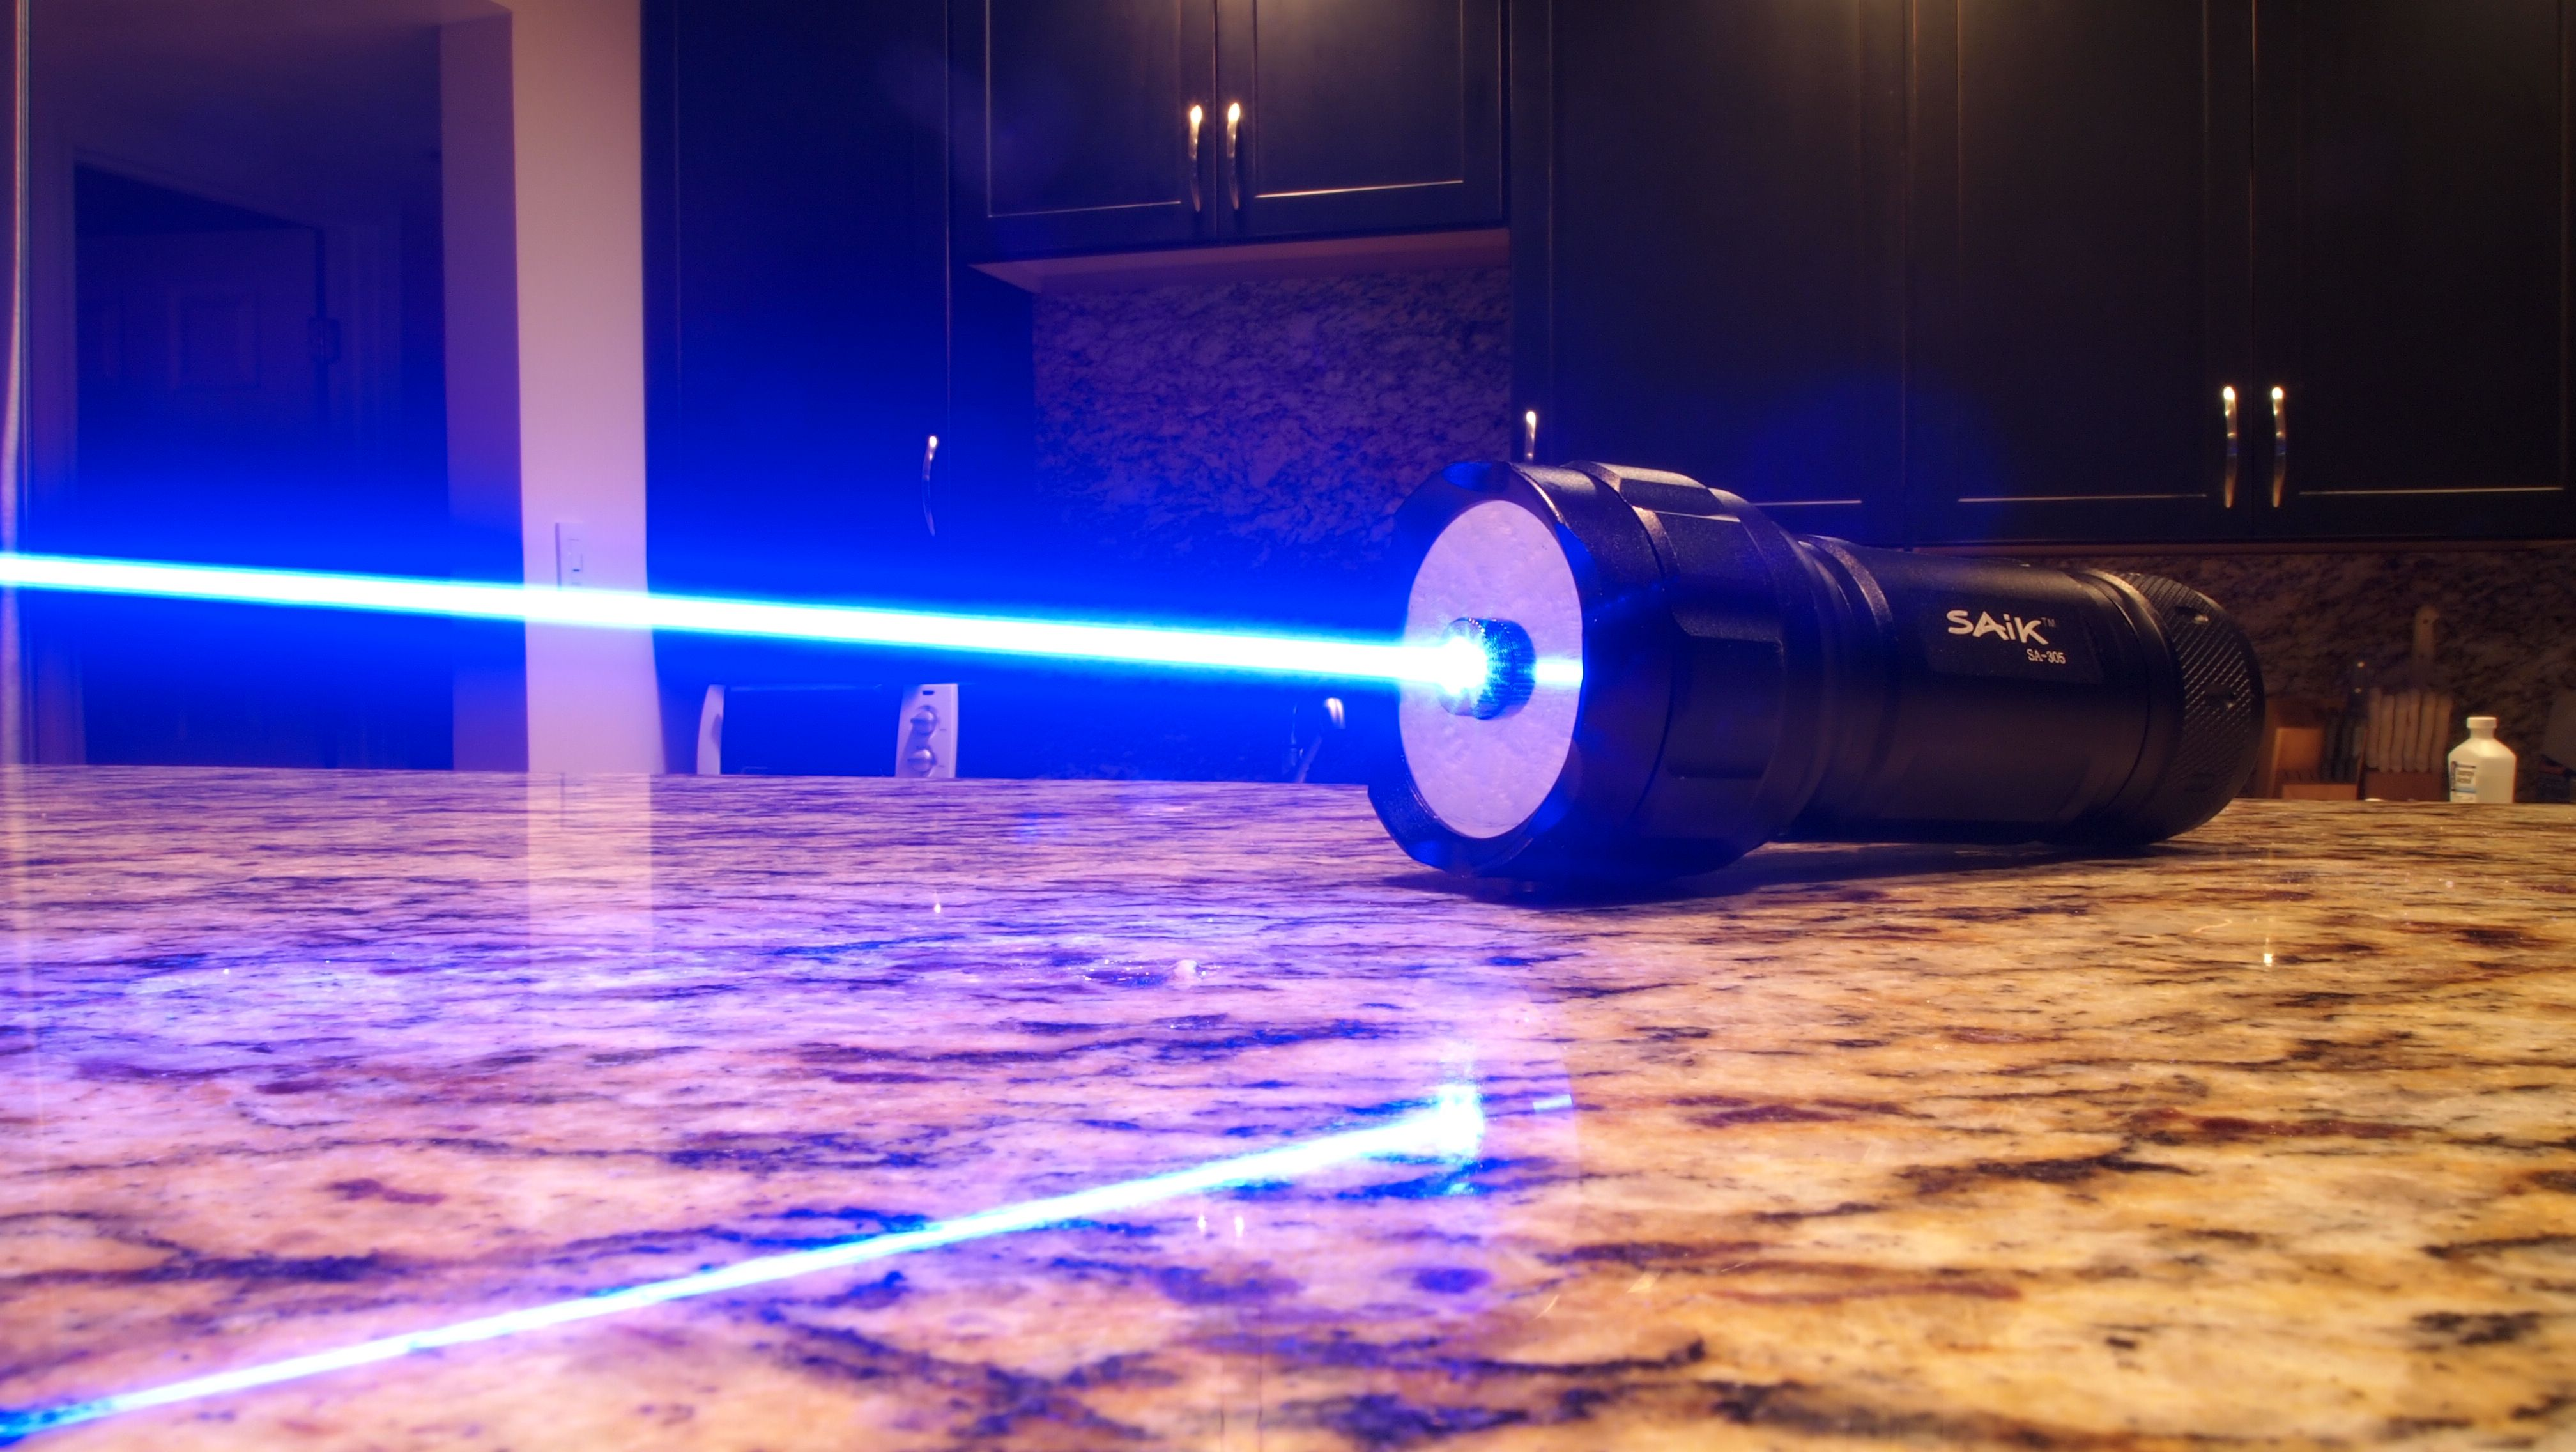 1w blue laser diagram house electrical wiring philippines 445nm a140 diode in aixiz module w leads